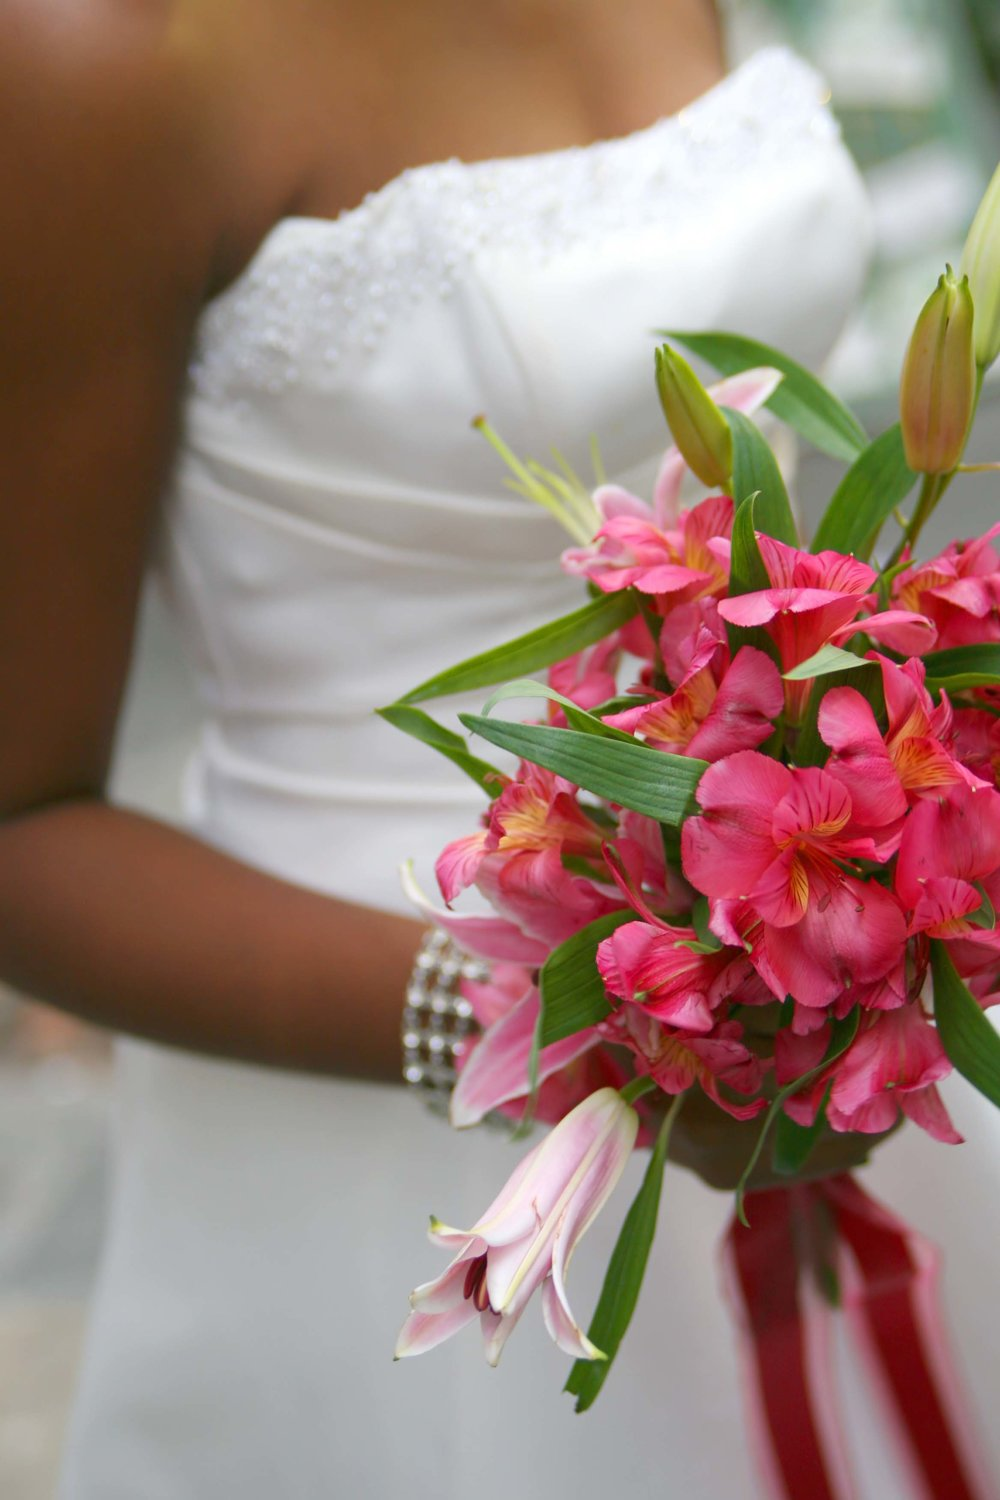 It's fast, easy, and free to deliver your bouquet for flower preservation from the St Cloud, MN area. Get started today! Call 701-400-6162.